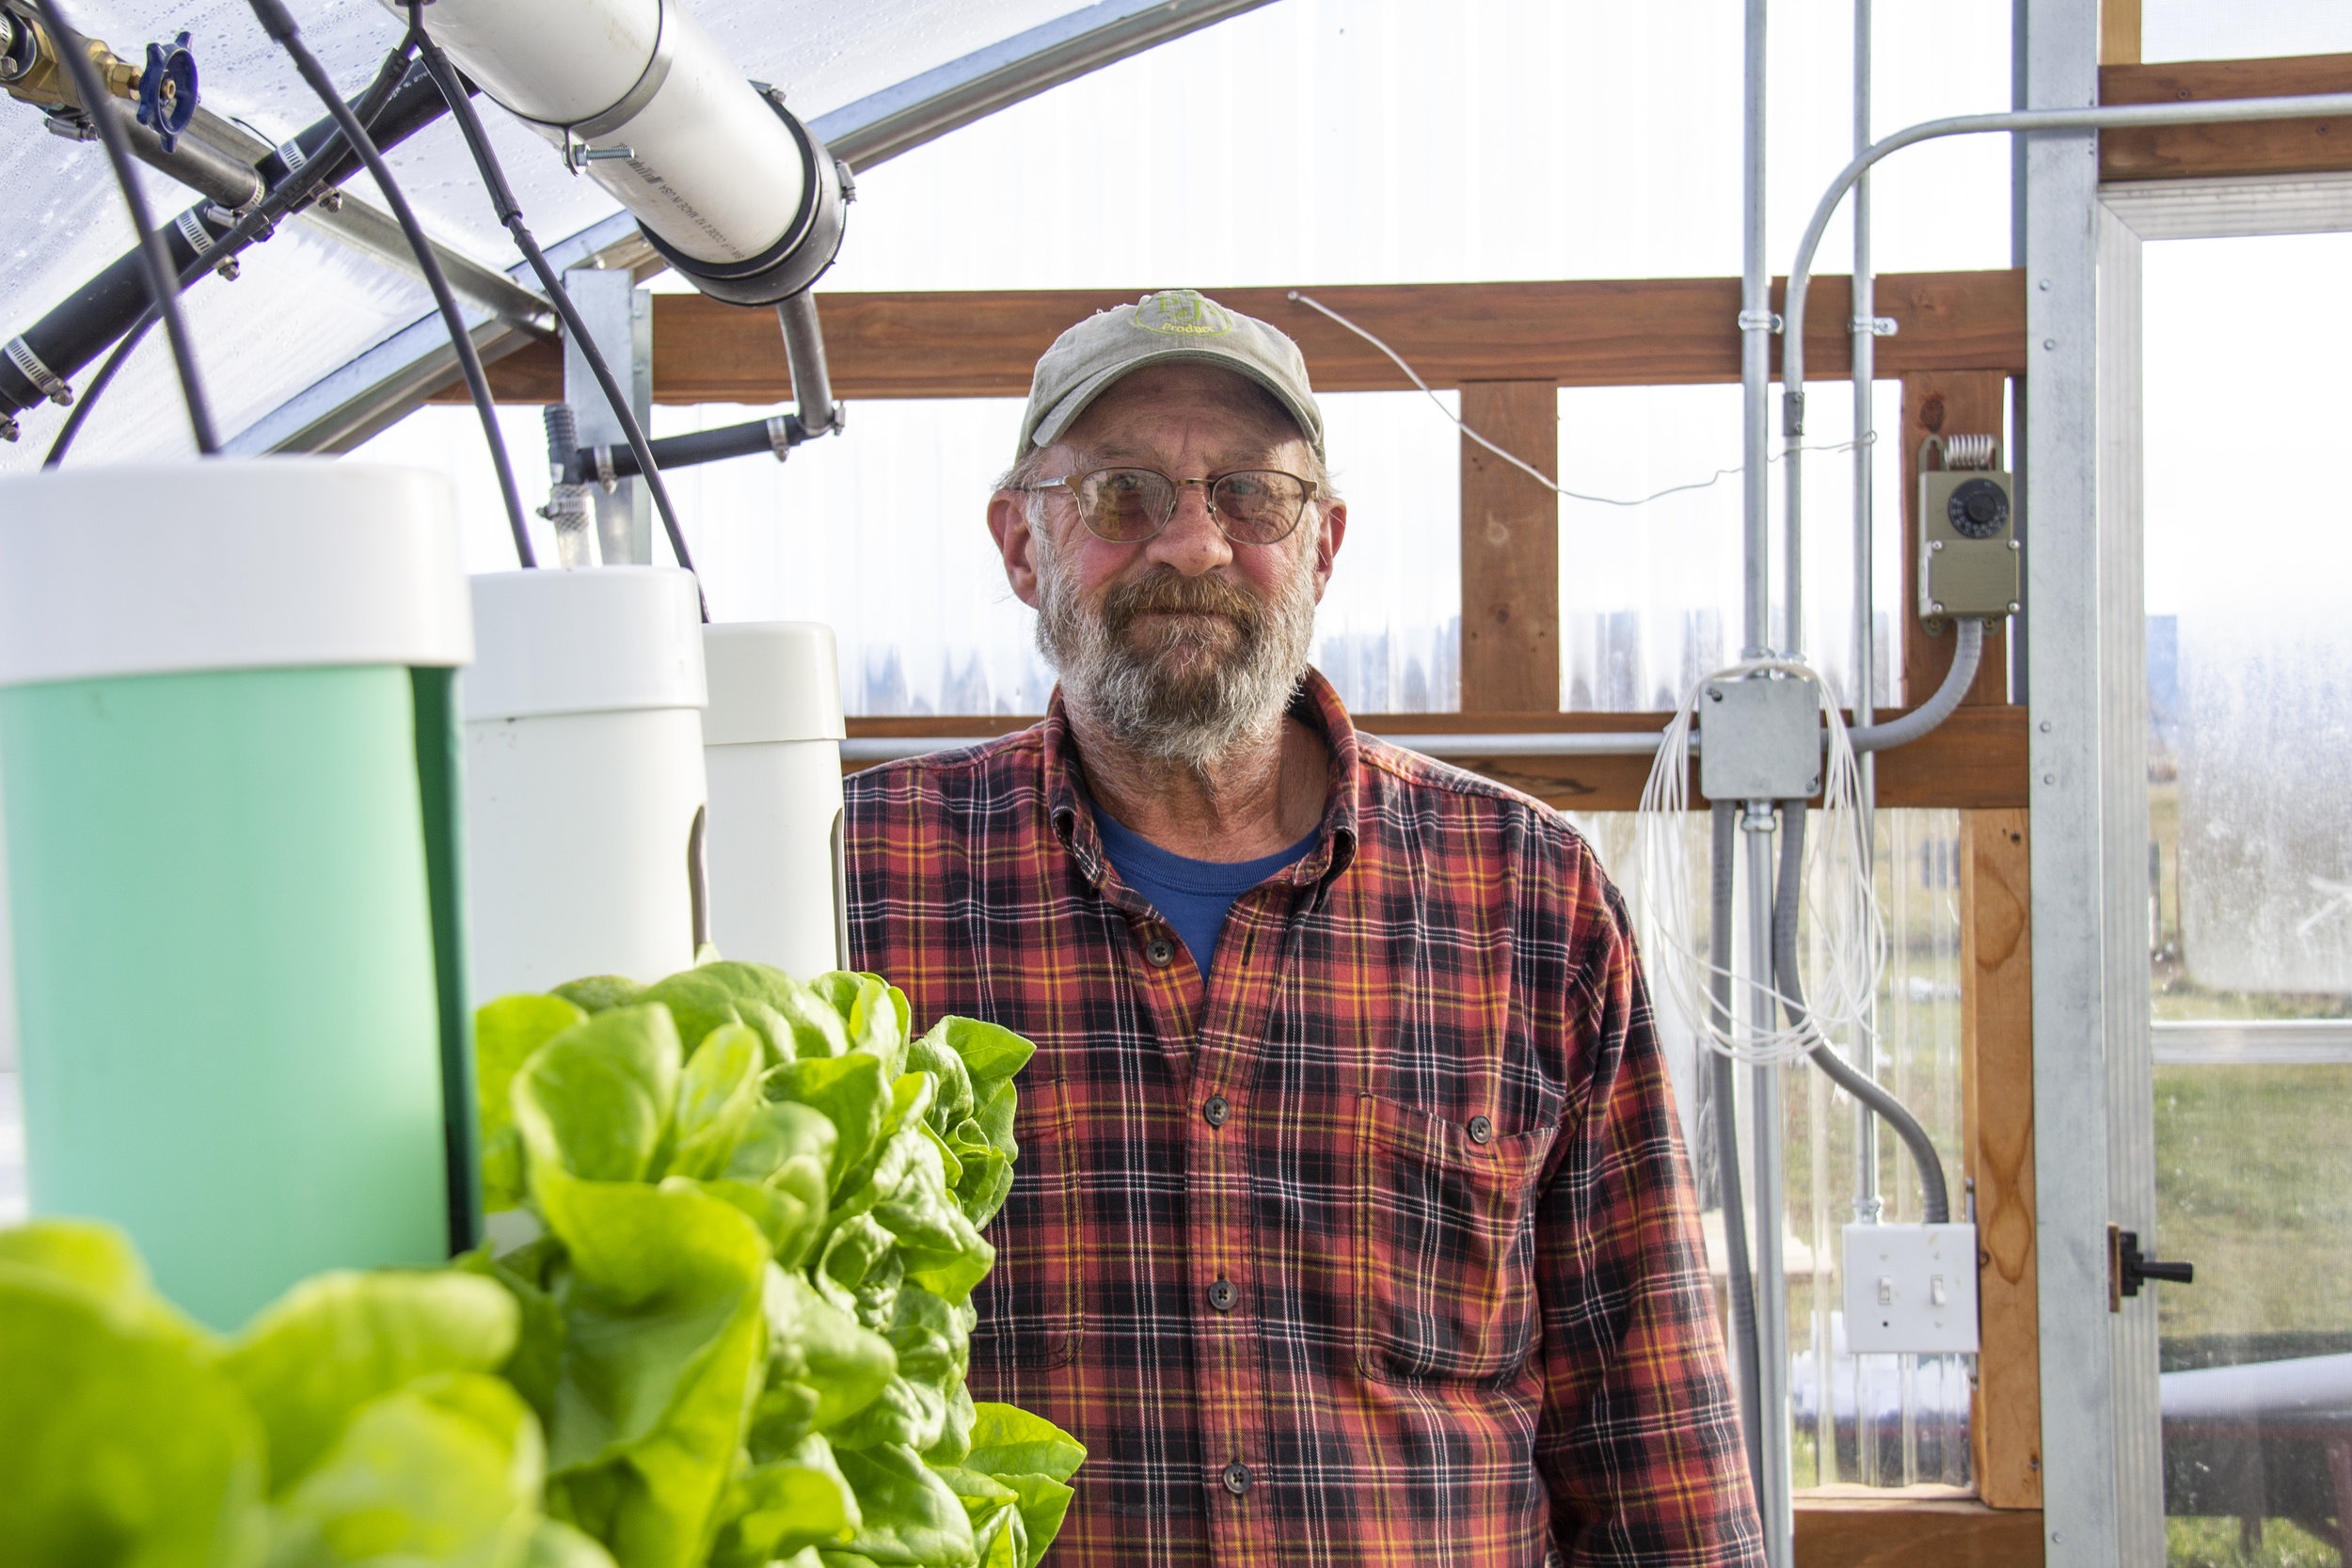 Joe Wesnitzer in his hydroponic greenhouse in Sheridan, Wyoming.